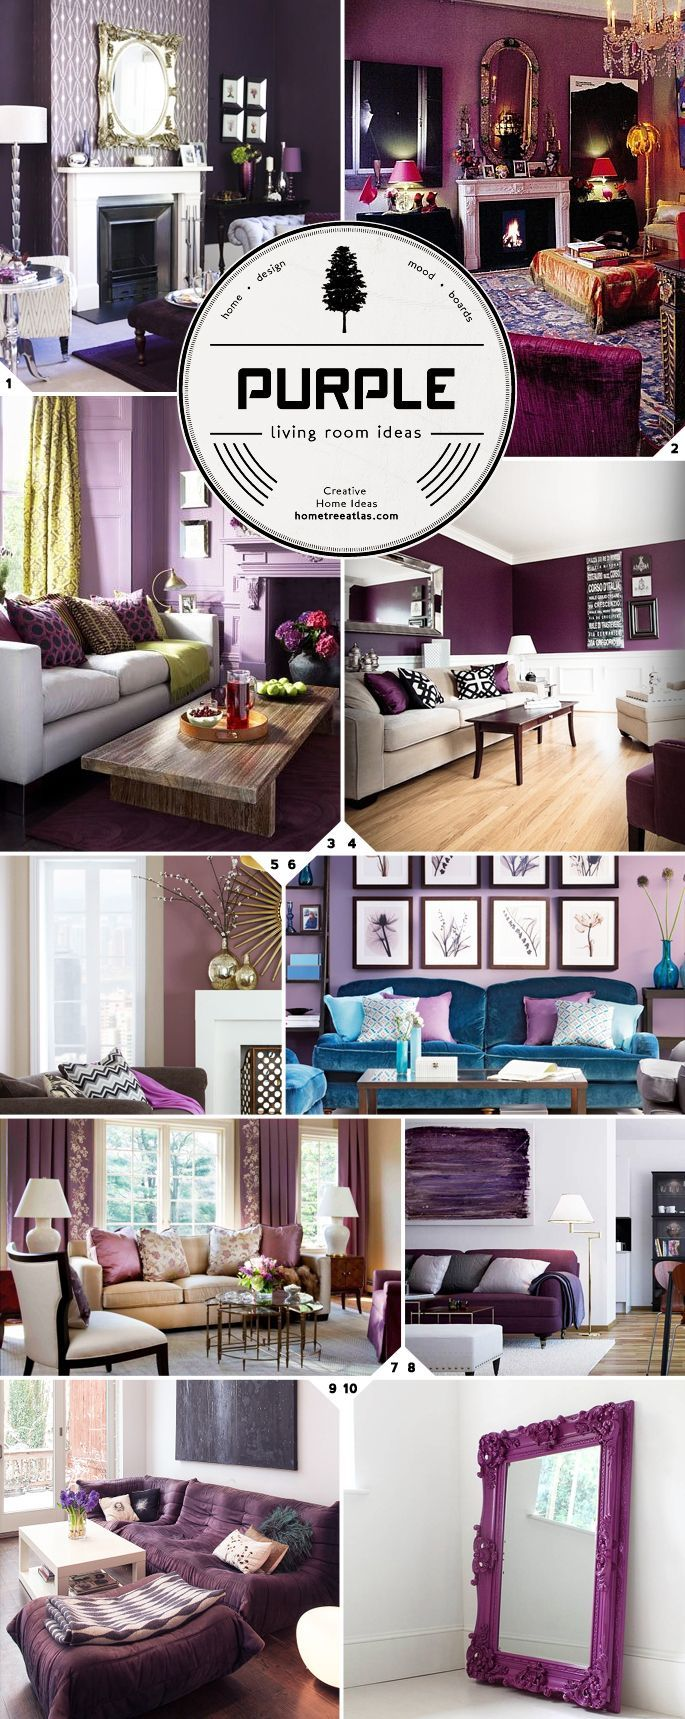 The Color Palette Purple Living Room Ideas And Design Tips